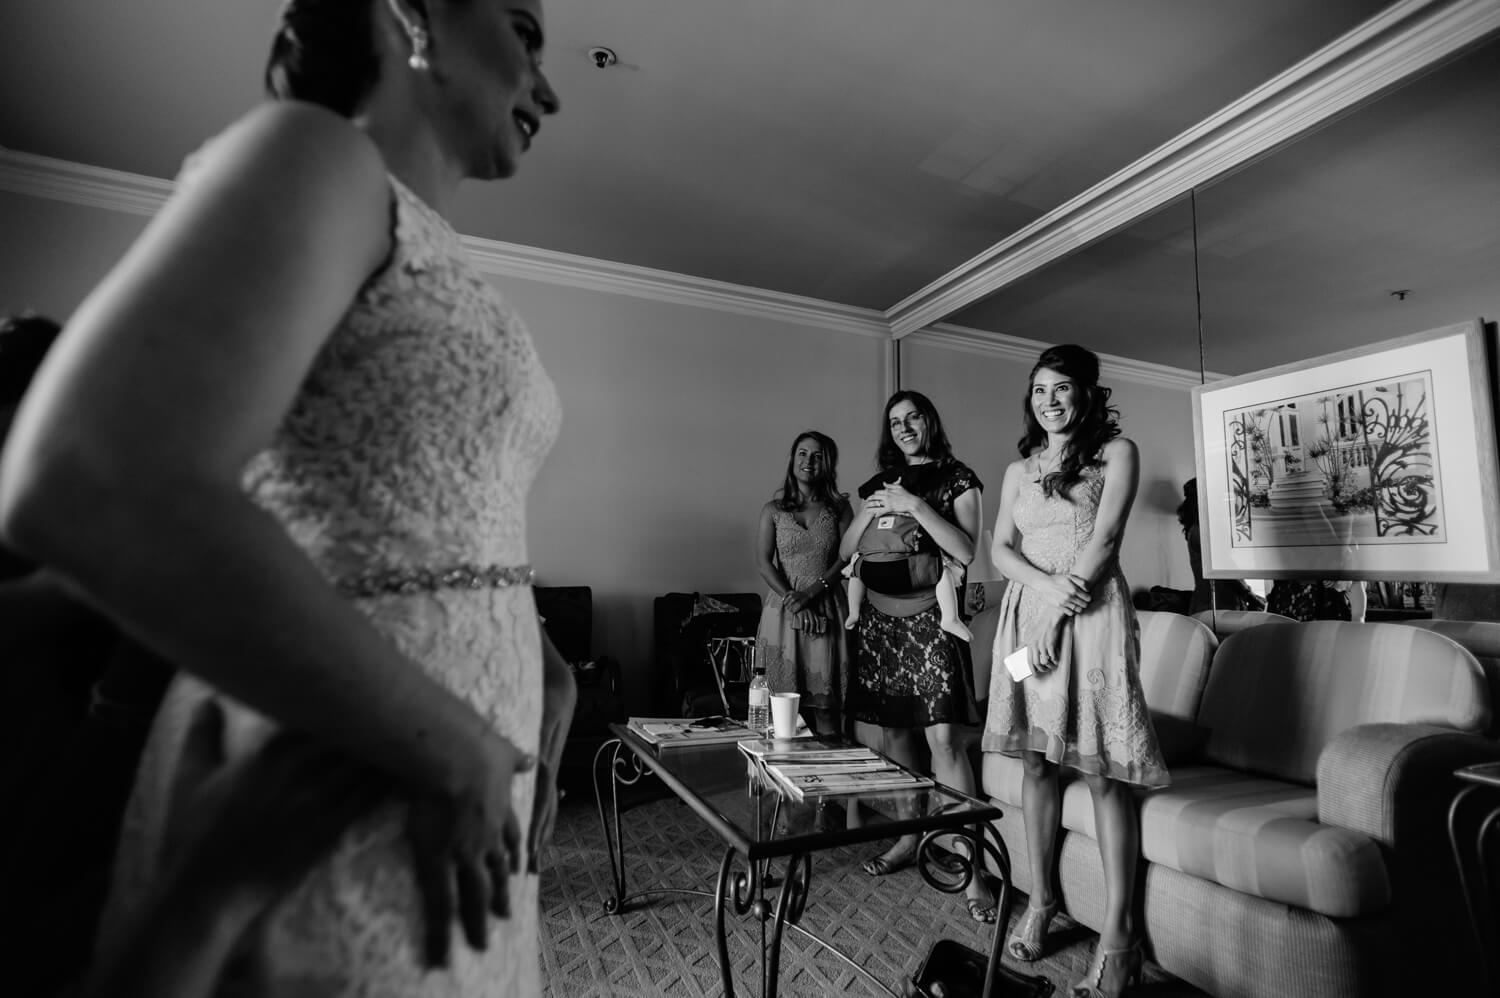 bridesmaids smile as bride looks in mirror to put finishing touches on gown before all hallows wedding